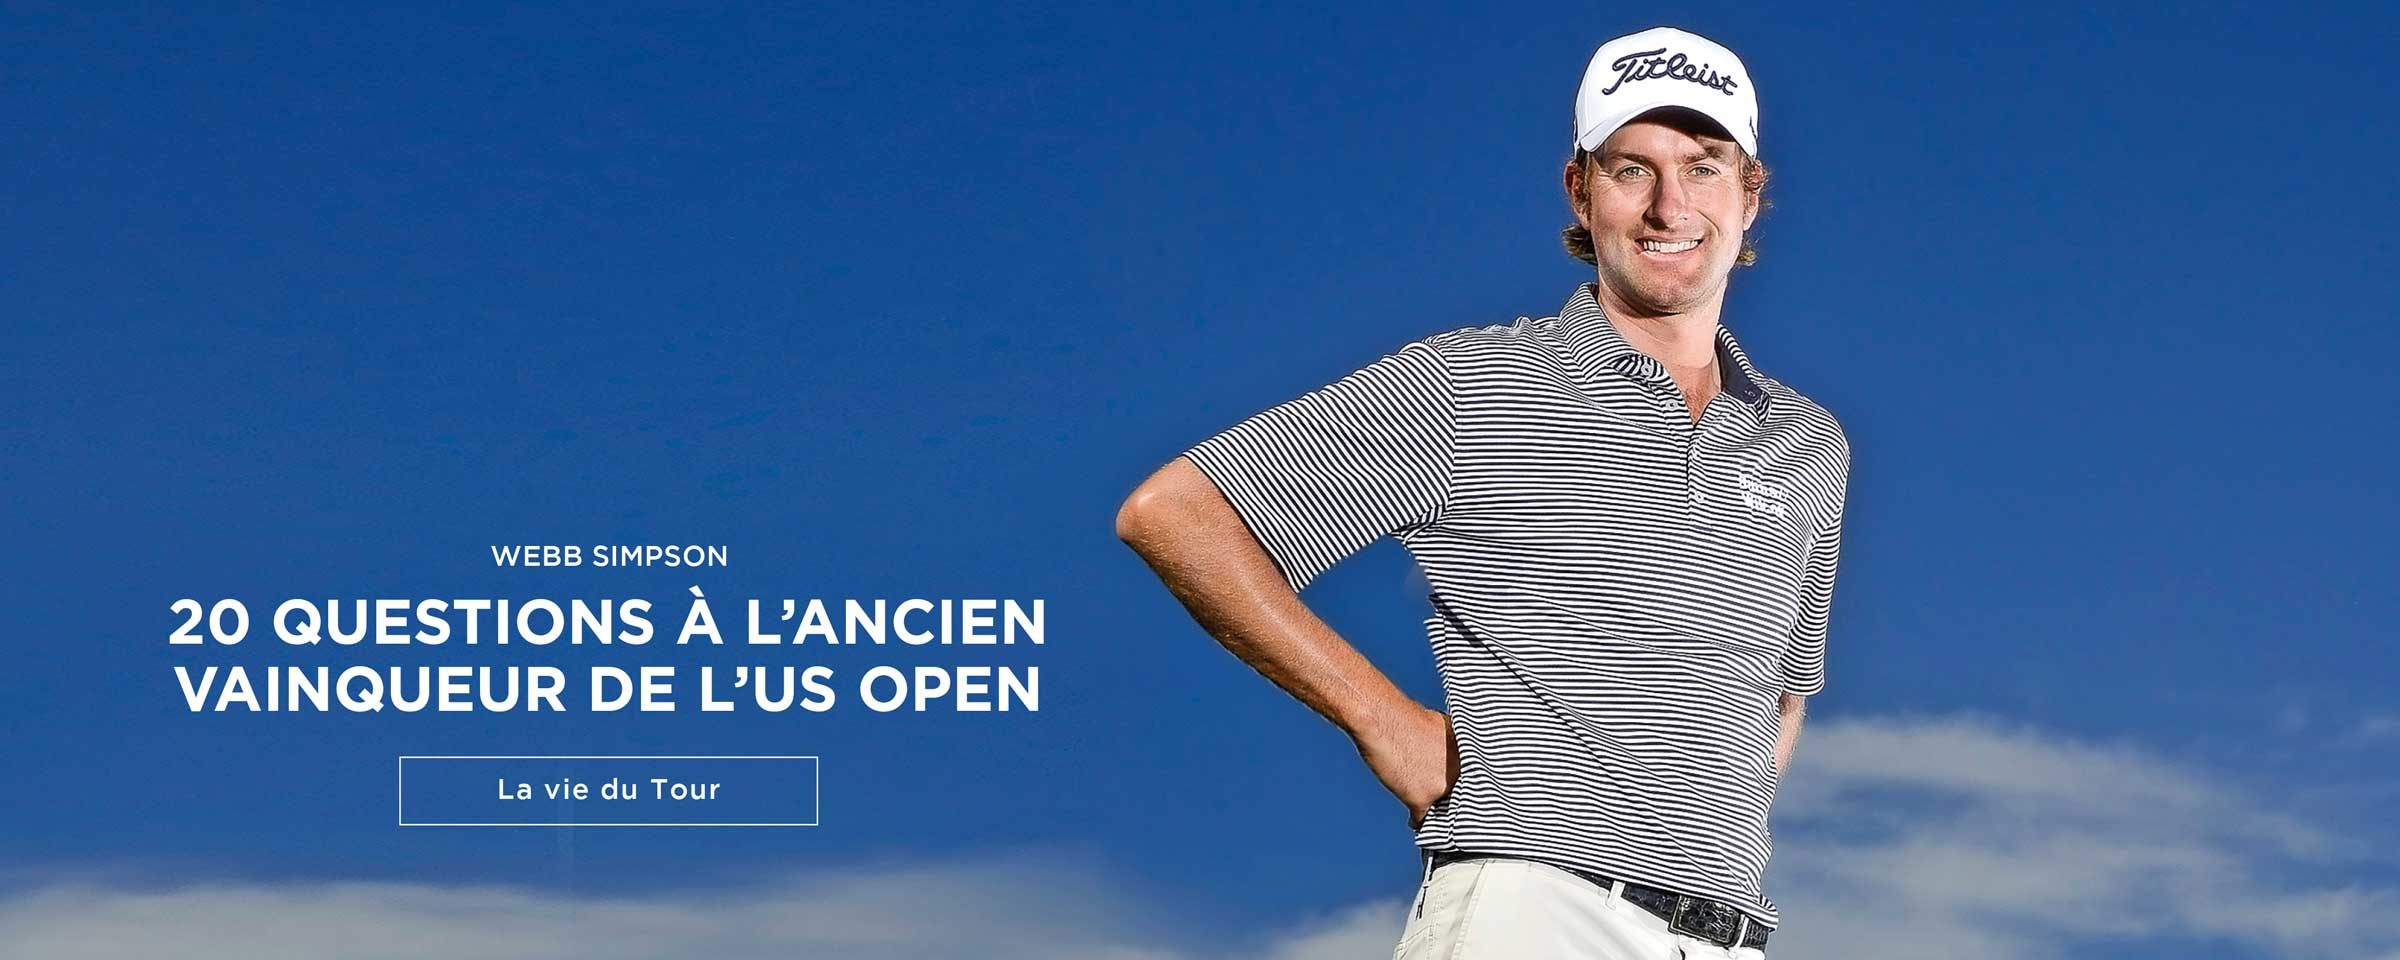 Webb Simpson – 20 questions